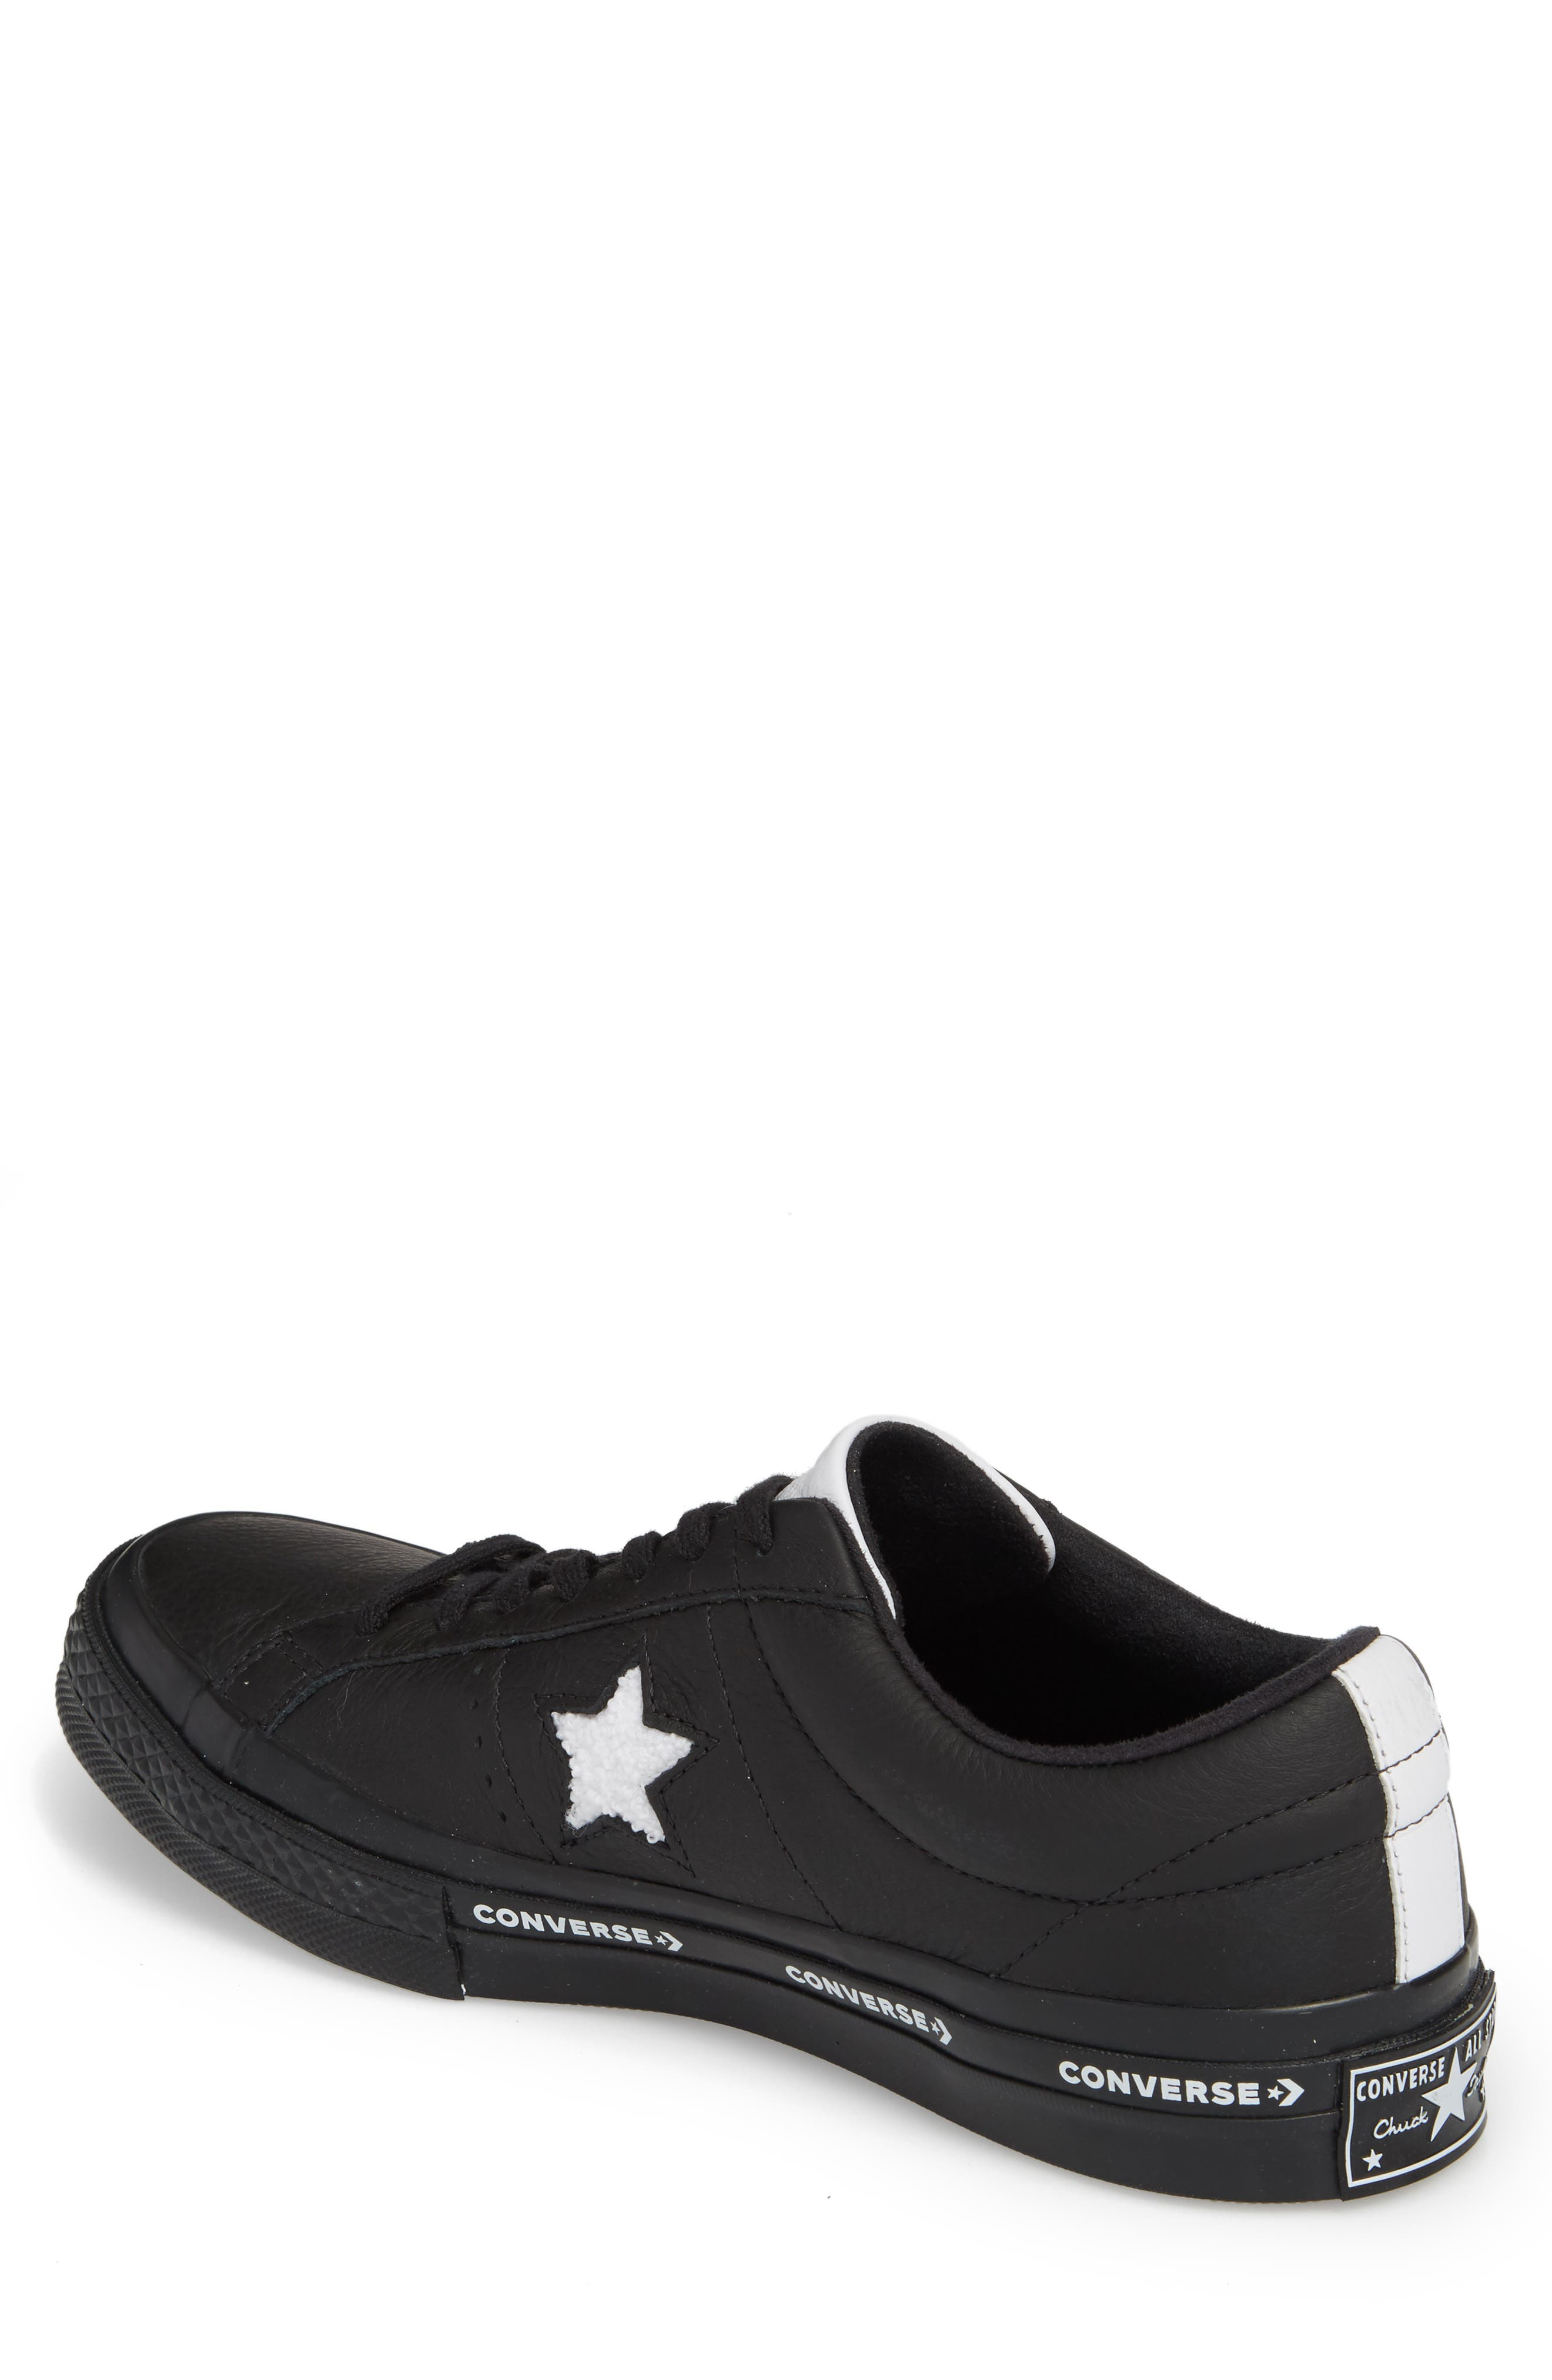 Chuck Taylor<sup>®</sup> One Star Pinstripe Sneaker,                             Alternate thumbnail 2, color,                             001